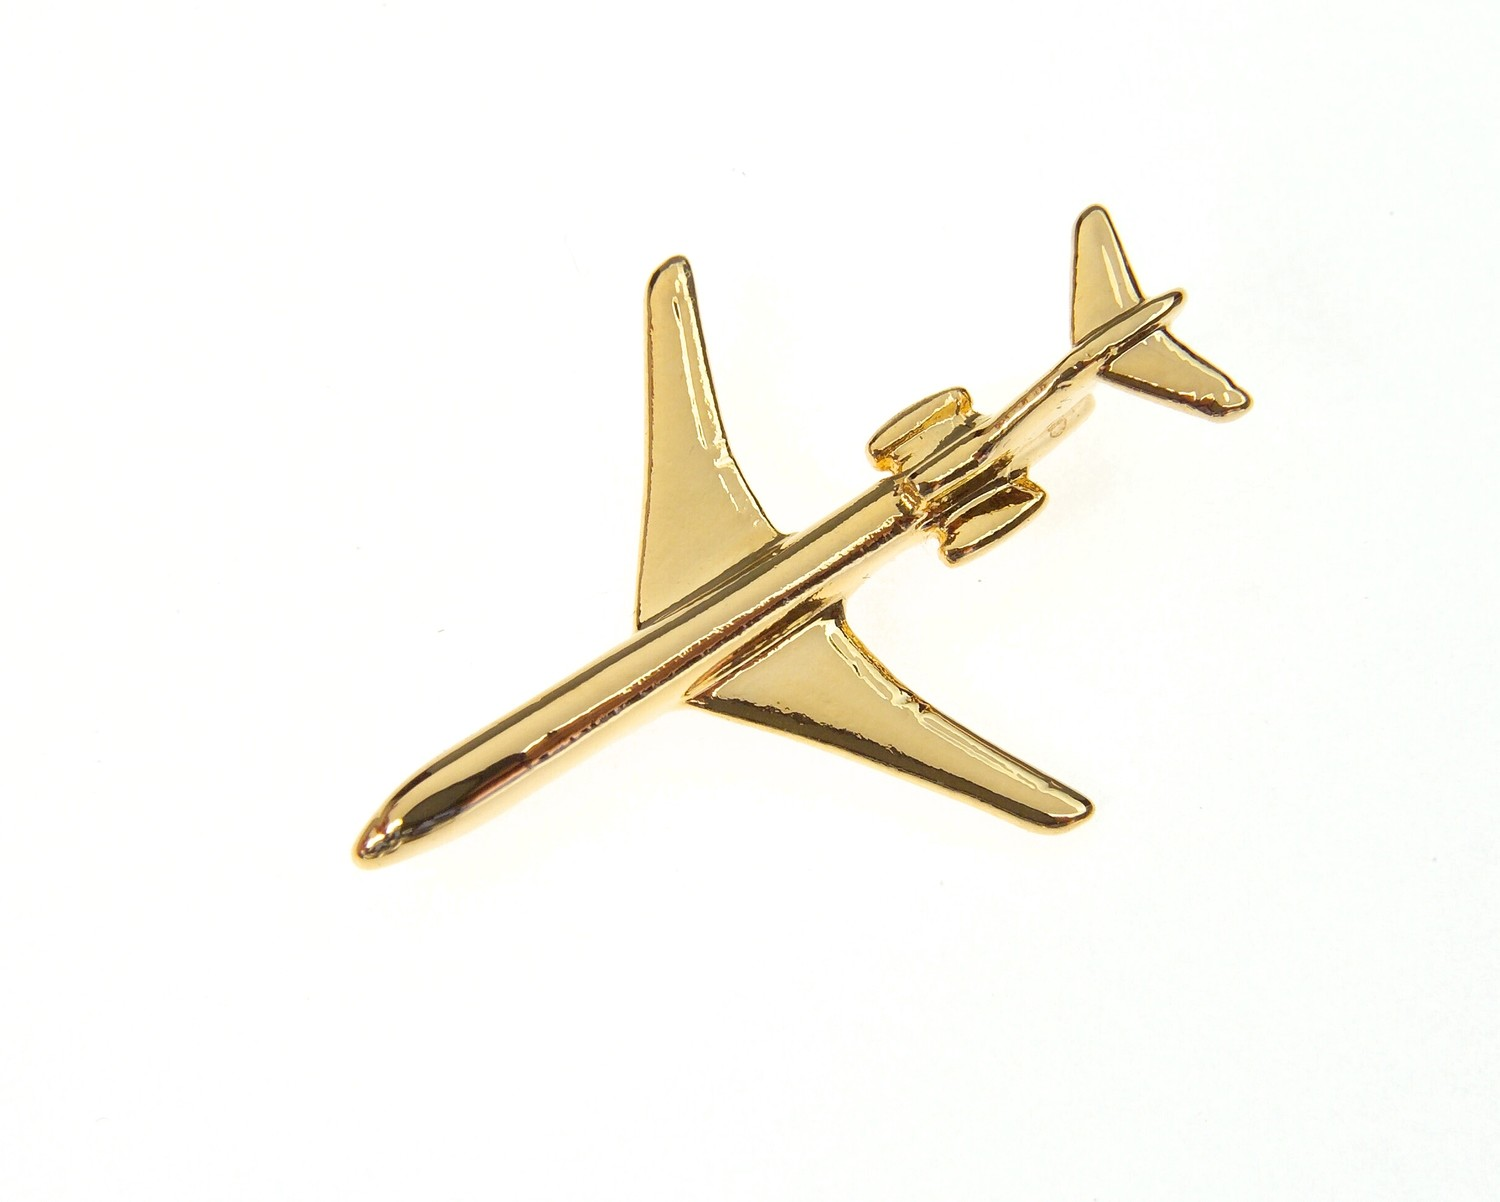 Boeing 727 Gold Plated Tie / Lapel Pin